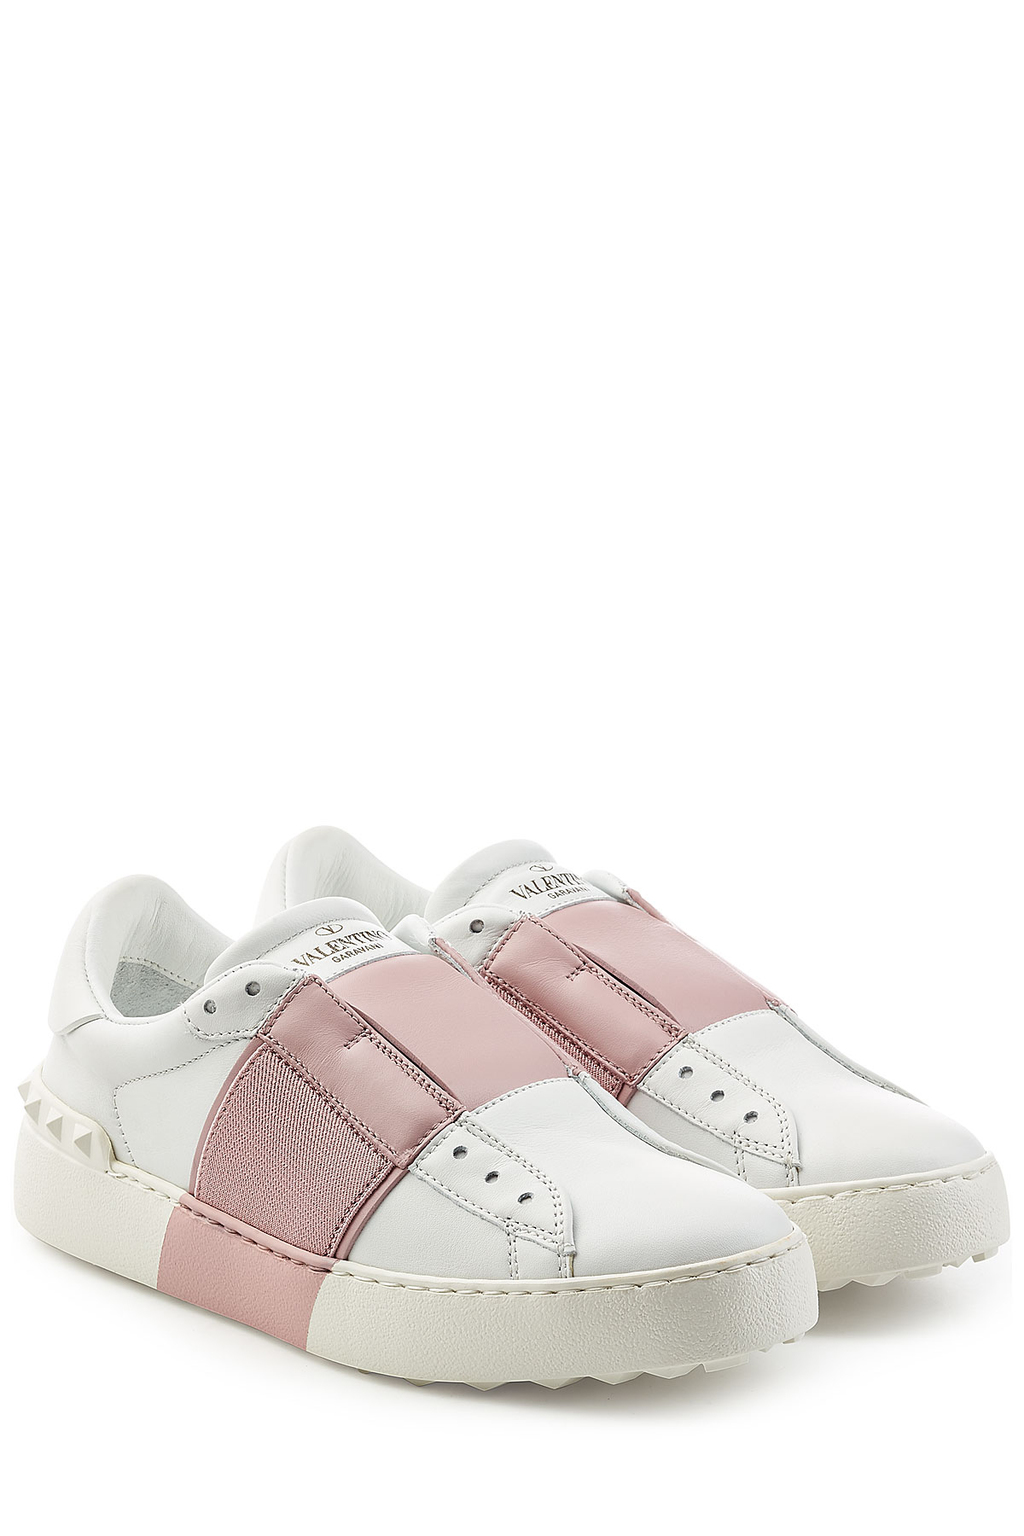 Open Leather Sneakers - predominant colour: white; secondary colour: blush; occasions: casual; material: leather; heel height: flat; toe: round toe; style: trainers; finish: plain; pattern: colourblock; shoe detail: moulded soul; season: s/s 2016; wardrobe: highlight